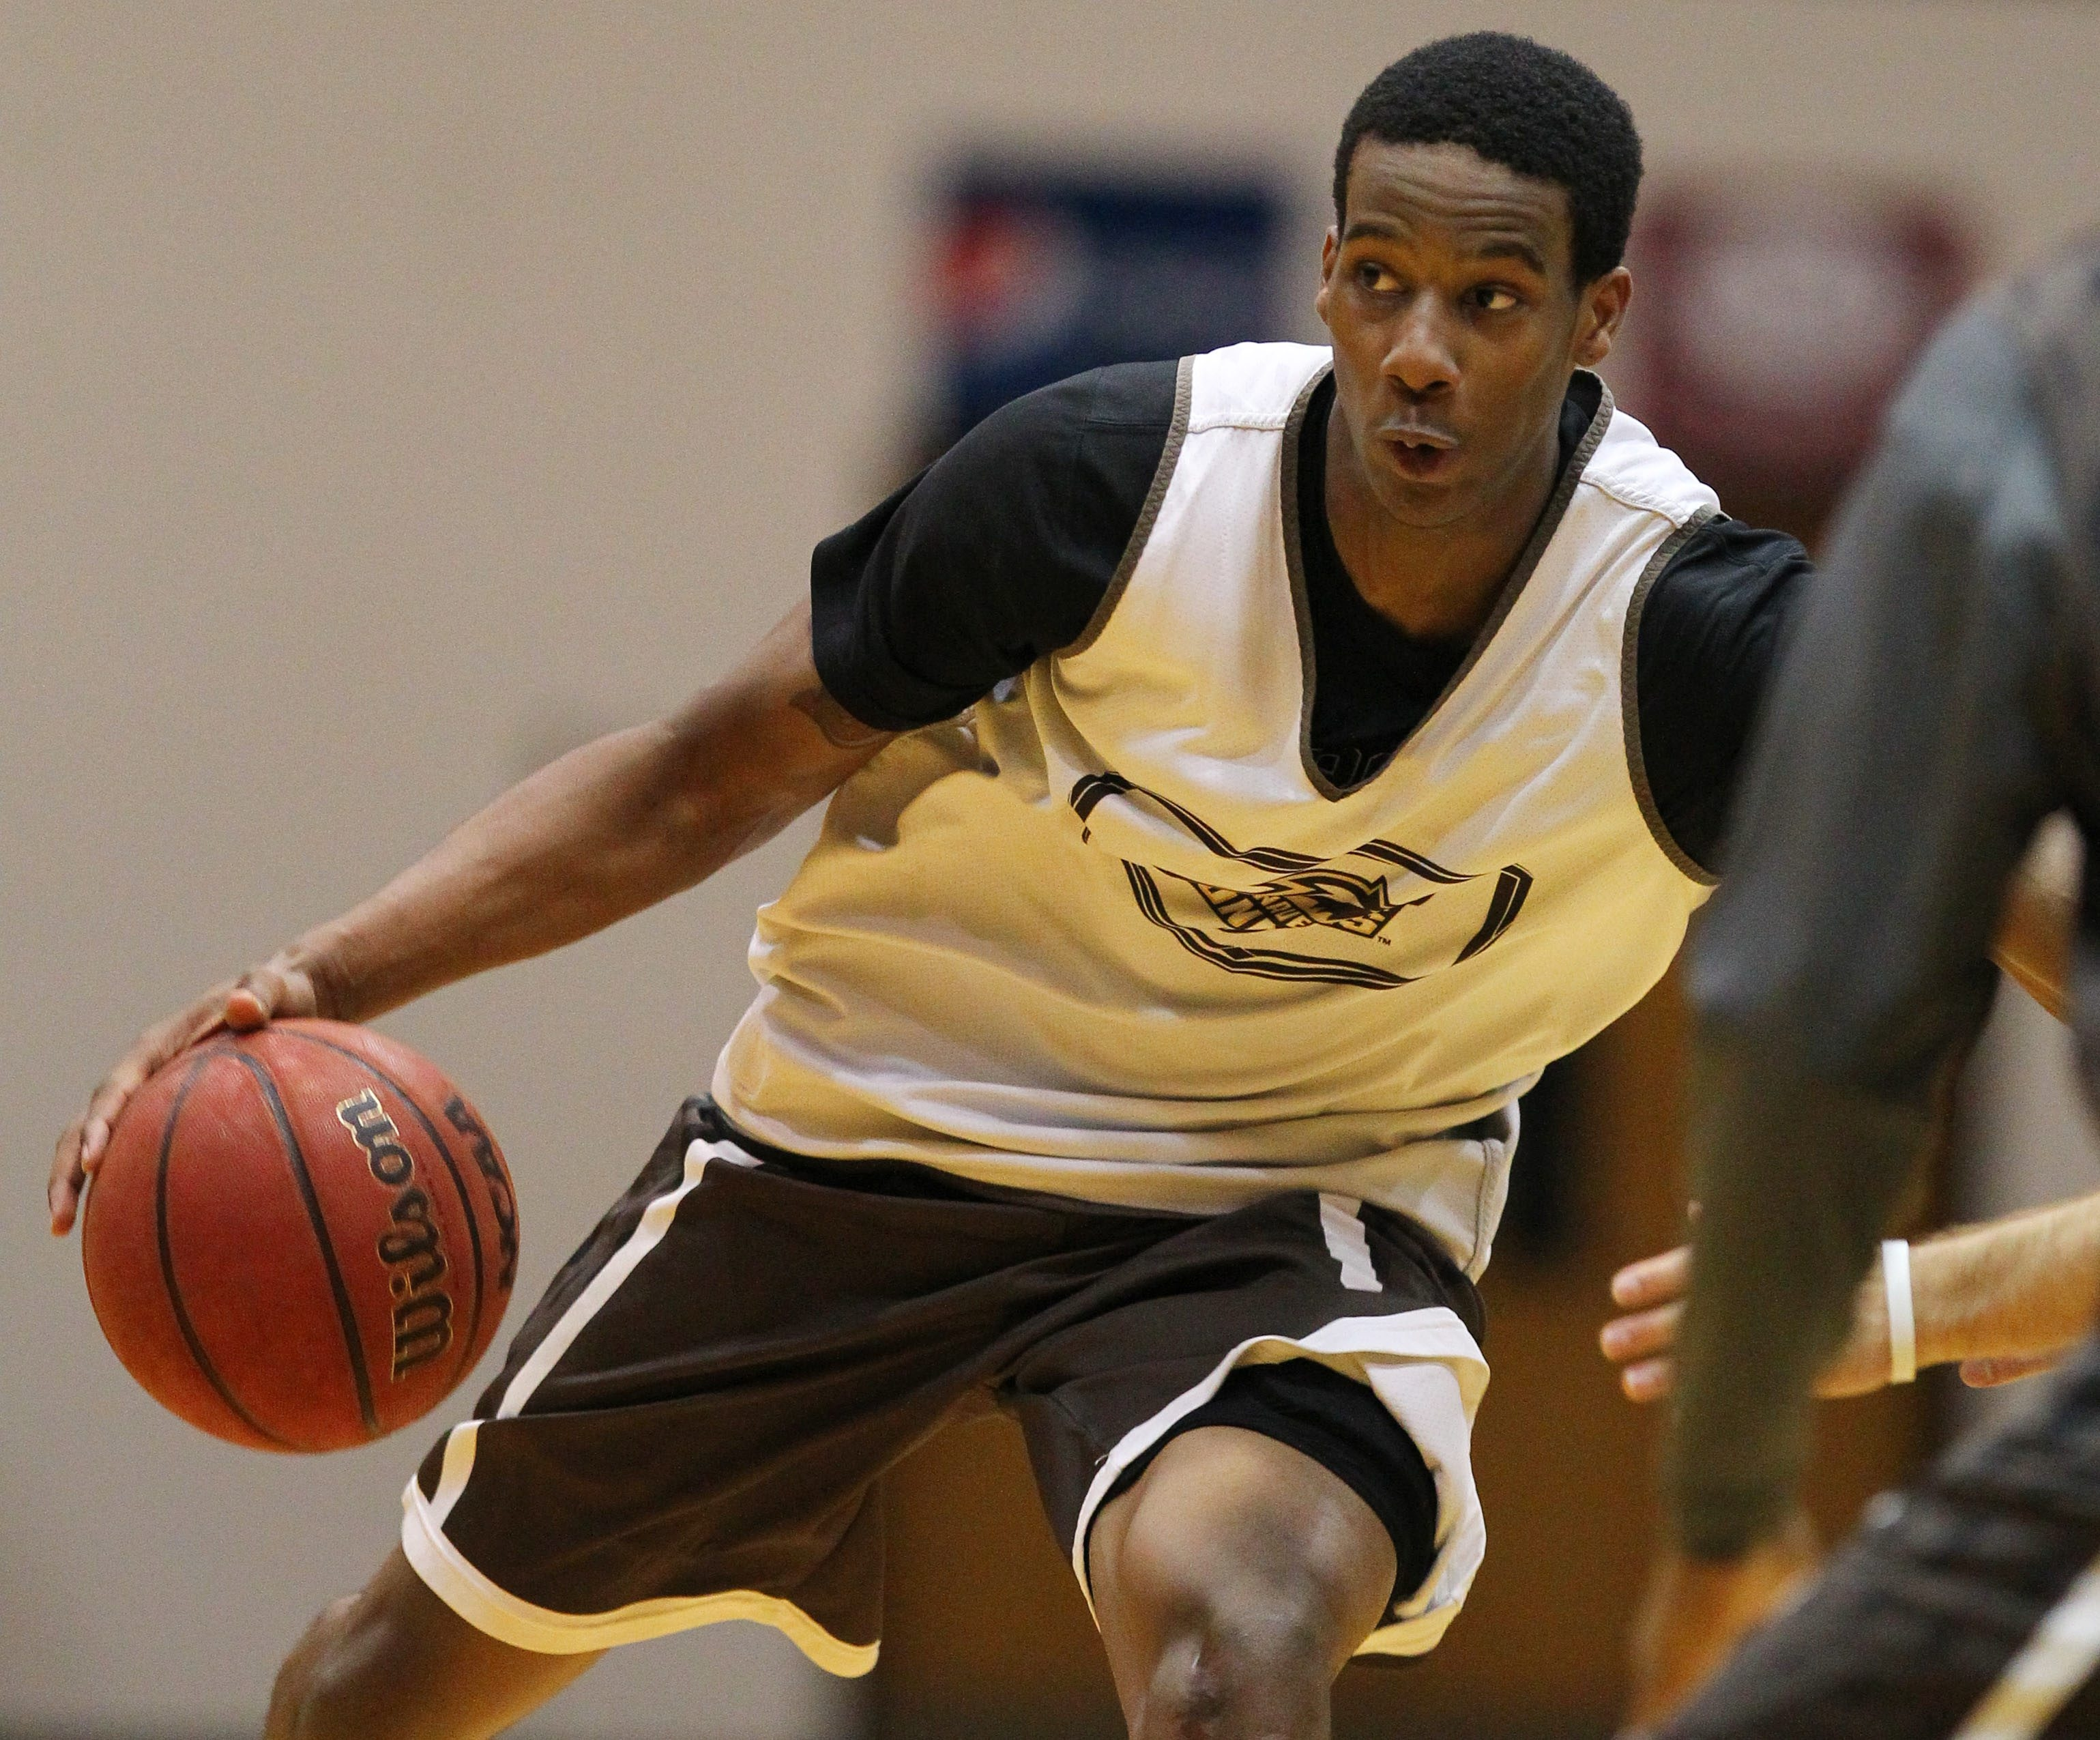 Junior college transfer Andell Cumberbatch is expected to pick up some of the scoring for the Bonnies.